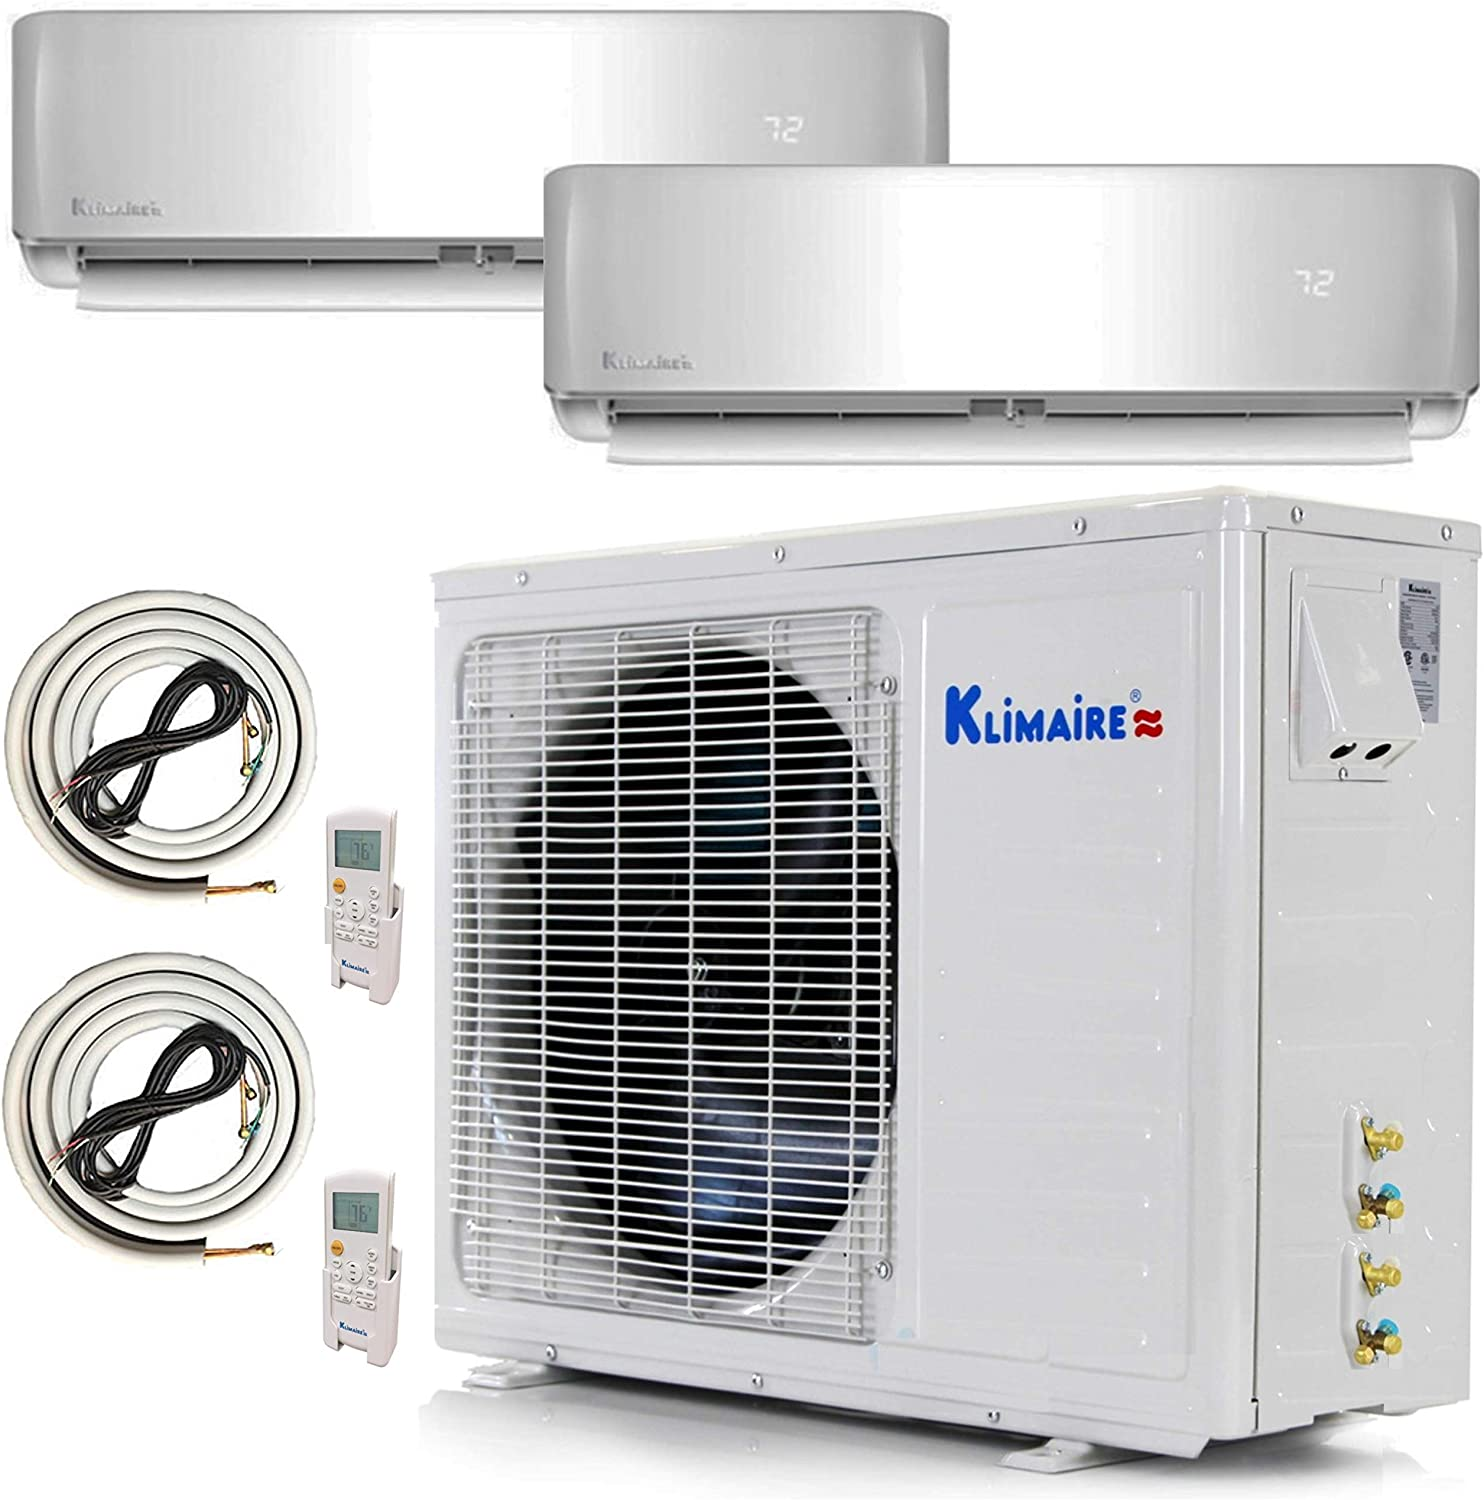 Klimaire Multi Zone Mini Split Ductless Air Conditioner - Dual Zone 9000 + 18000-2 Zone Pre-Charged Inverter Compressor - Includes Two Free 25' Linesets - US Parts & Tech Support